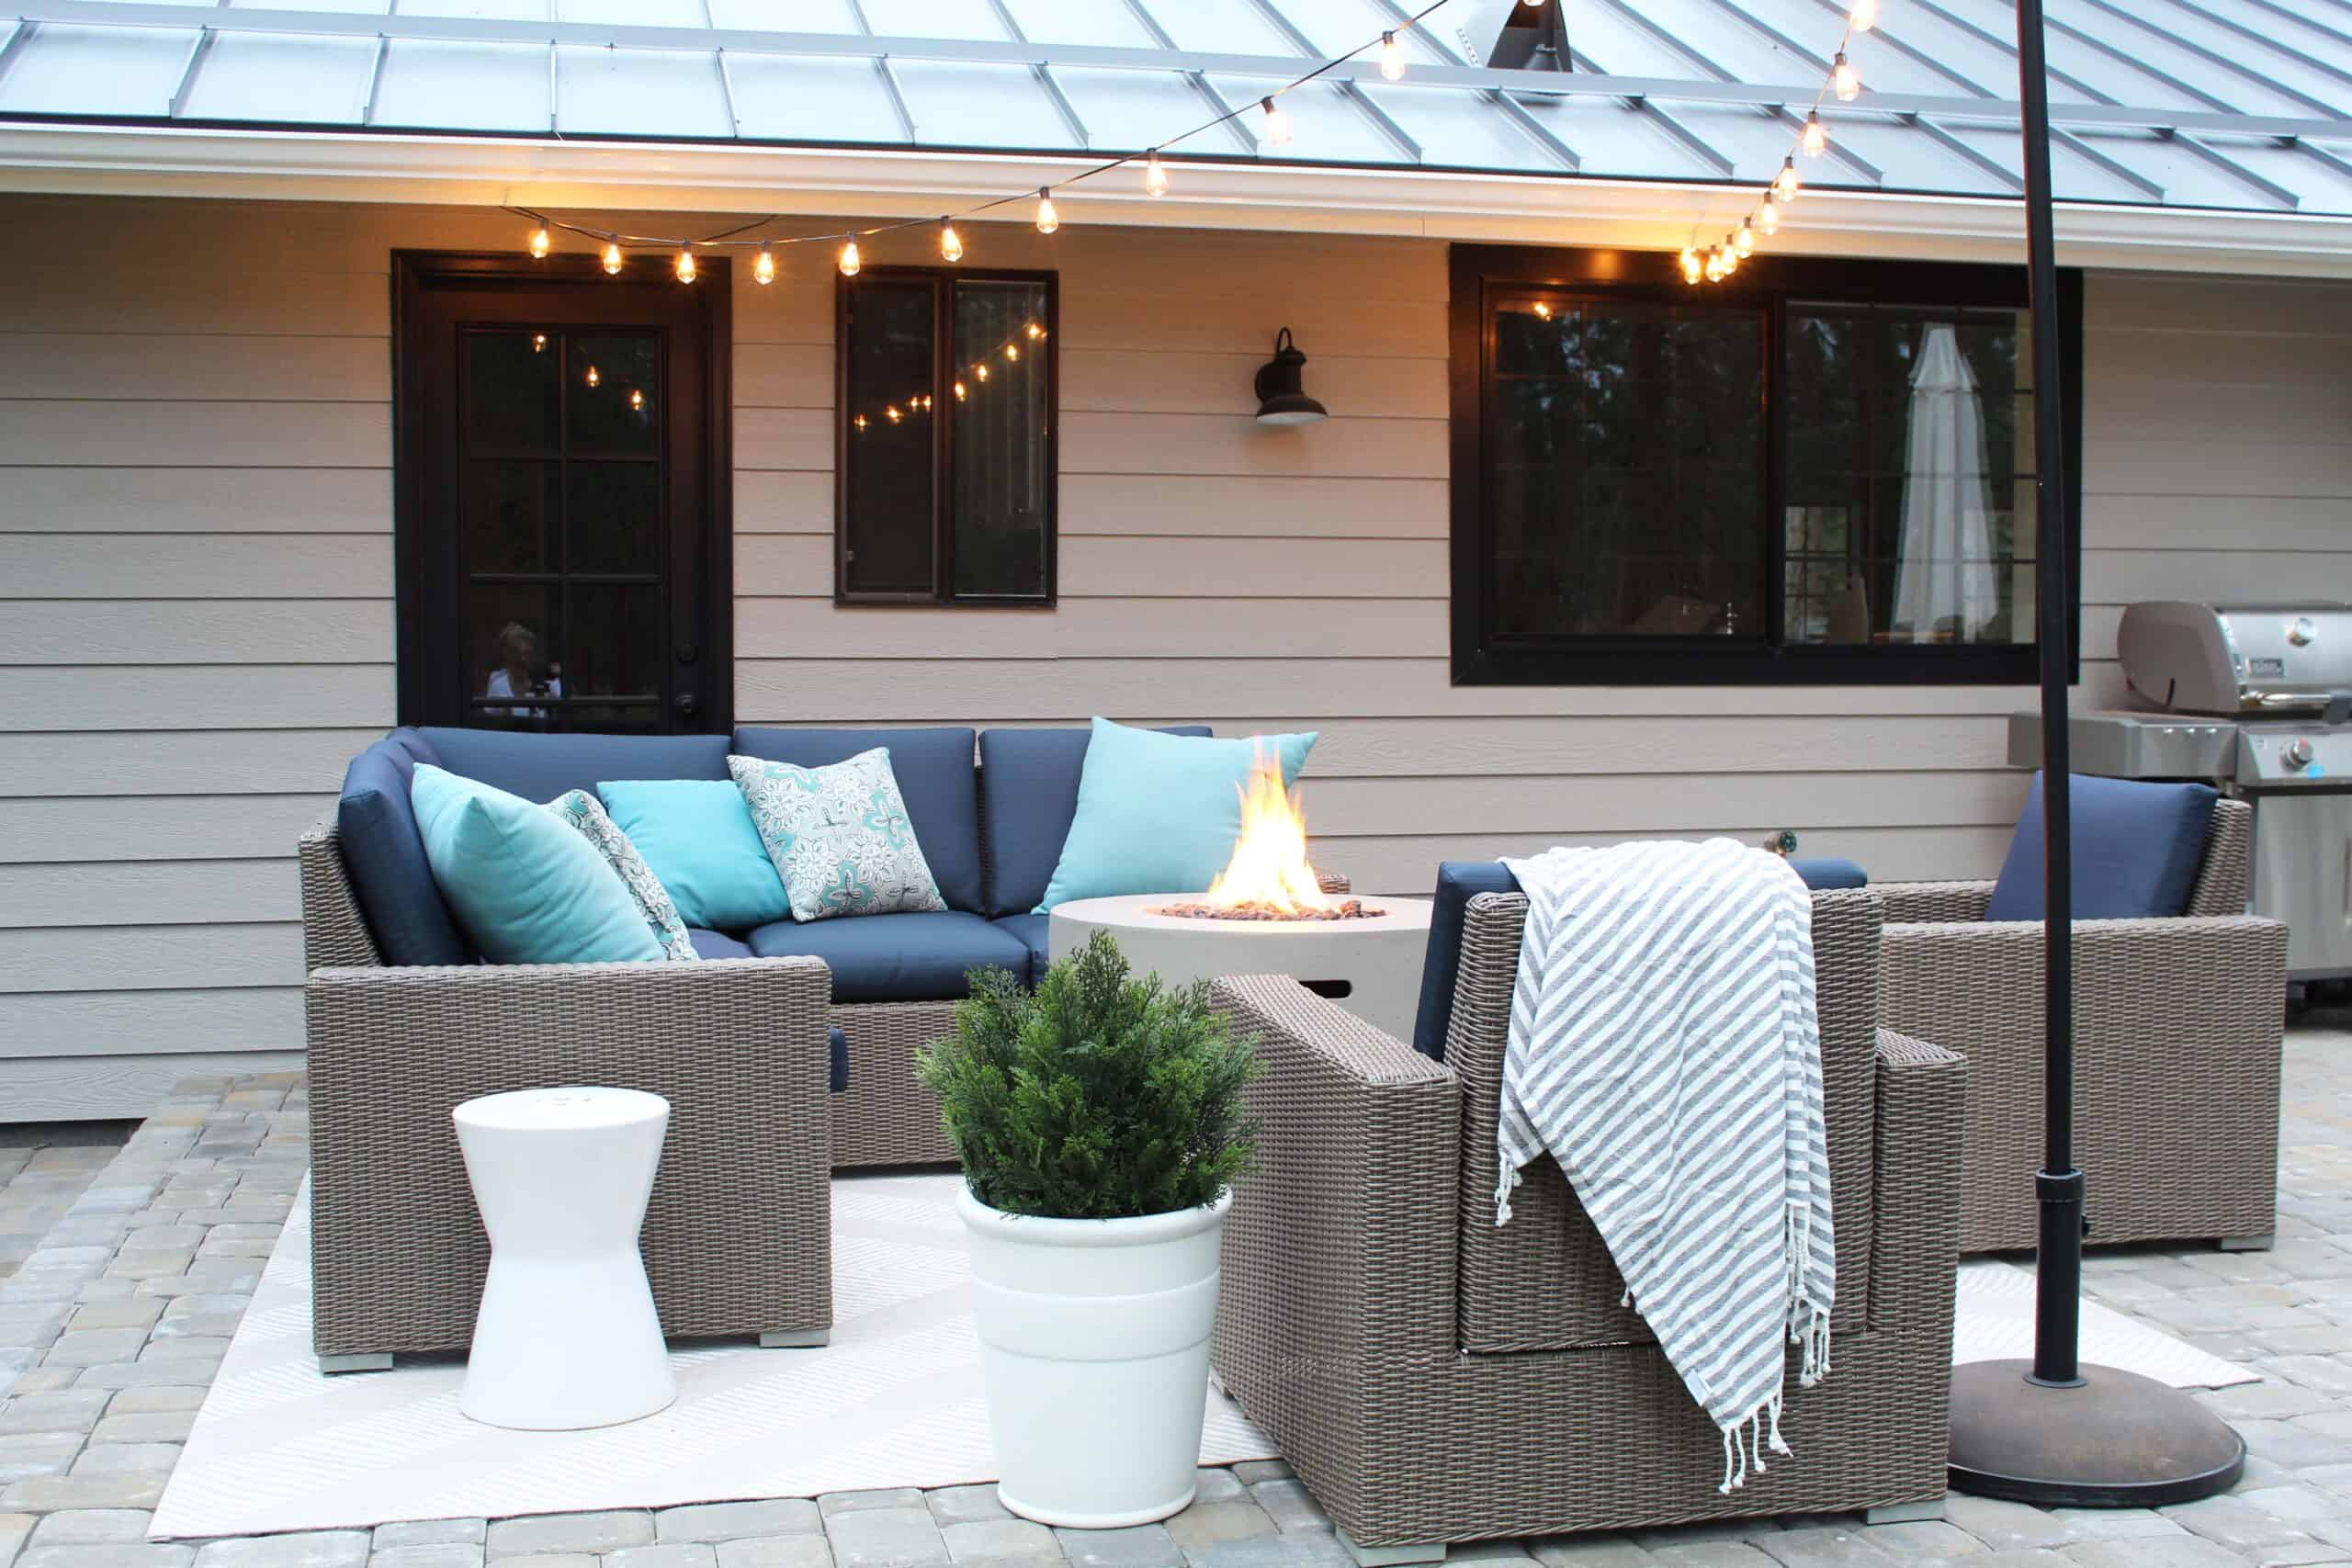 how to add string lights to your patio, target wicker outdoor furniture set, round cement fire pit